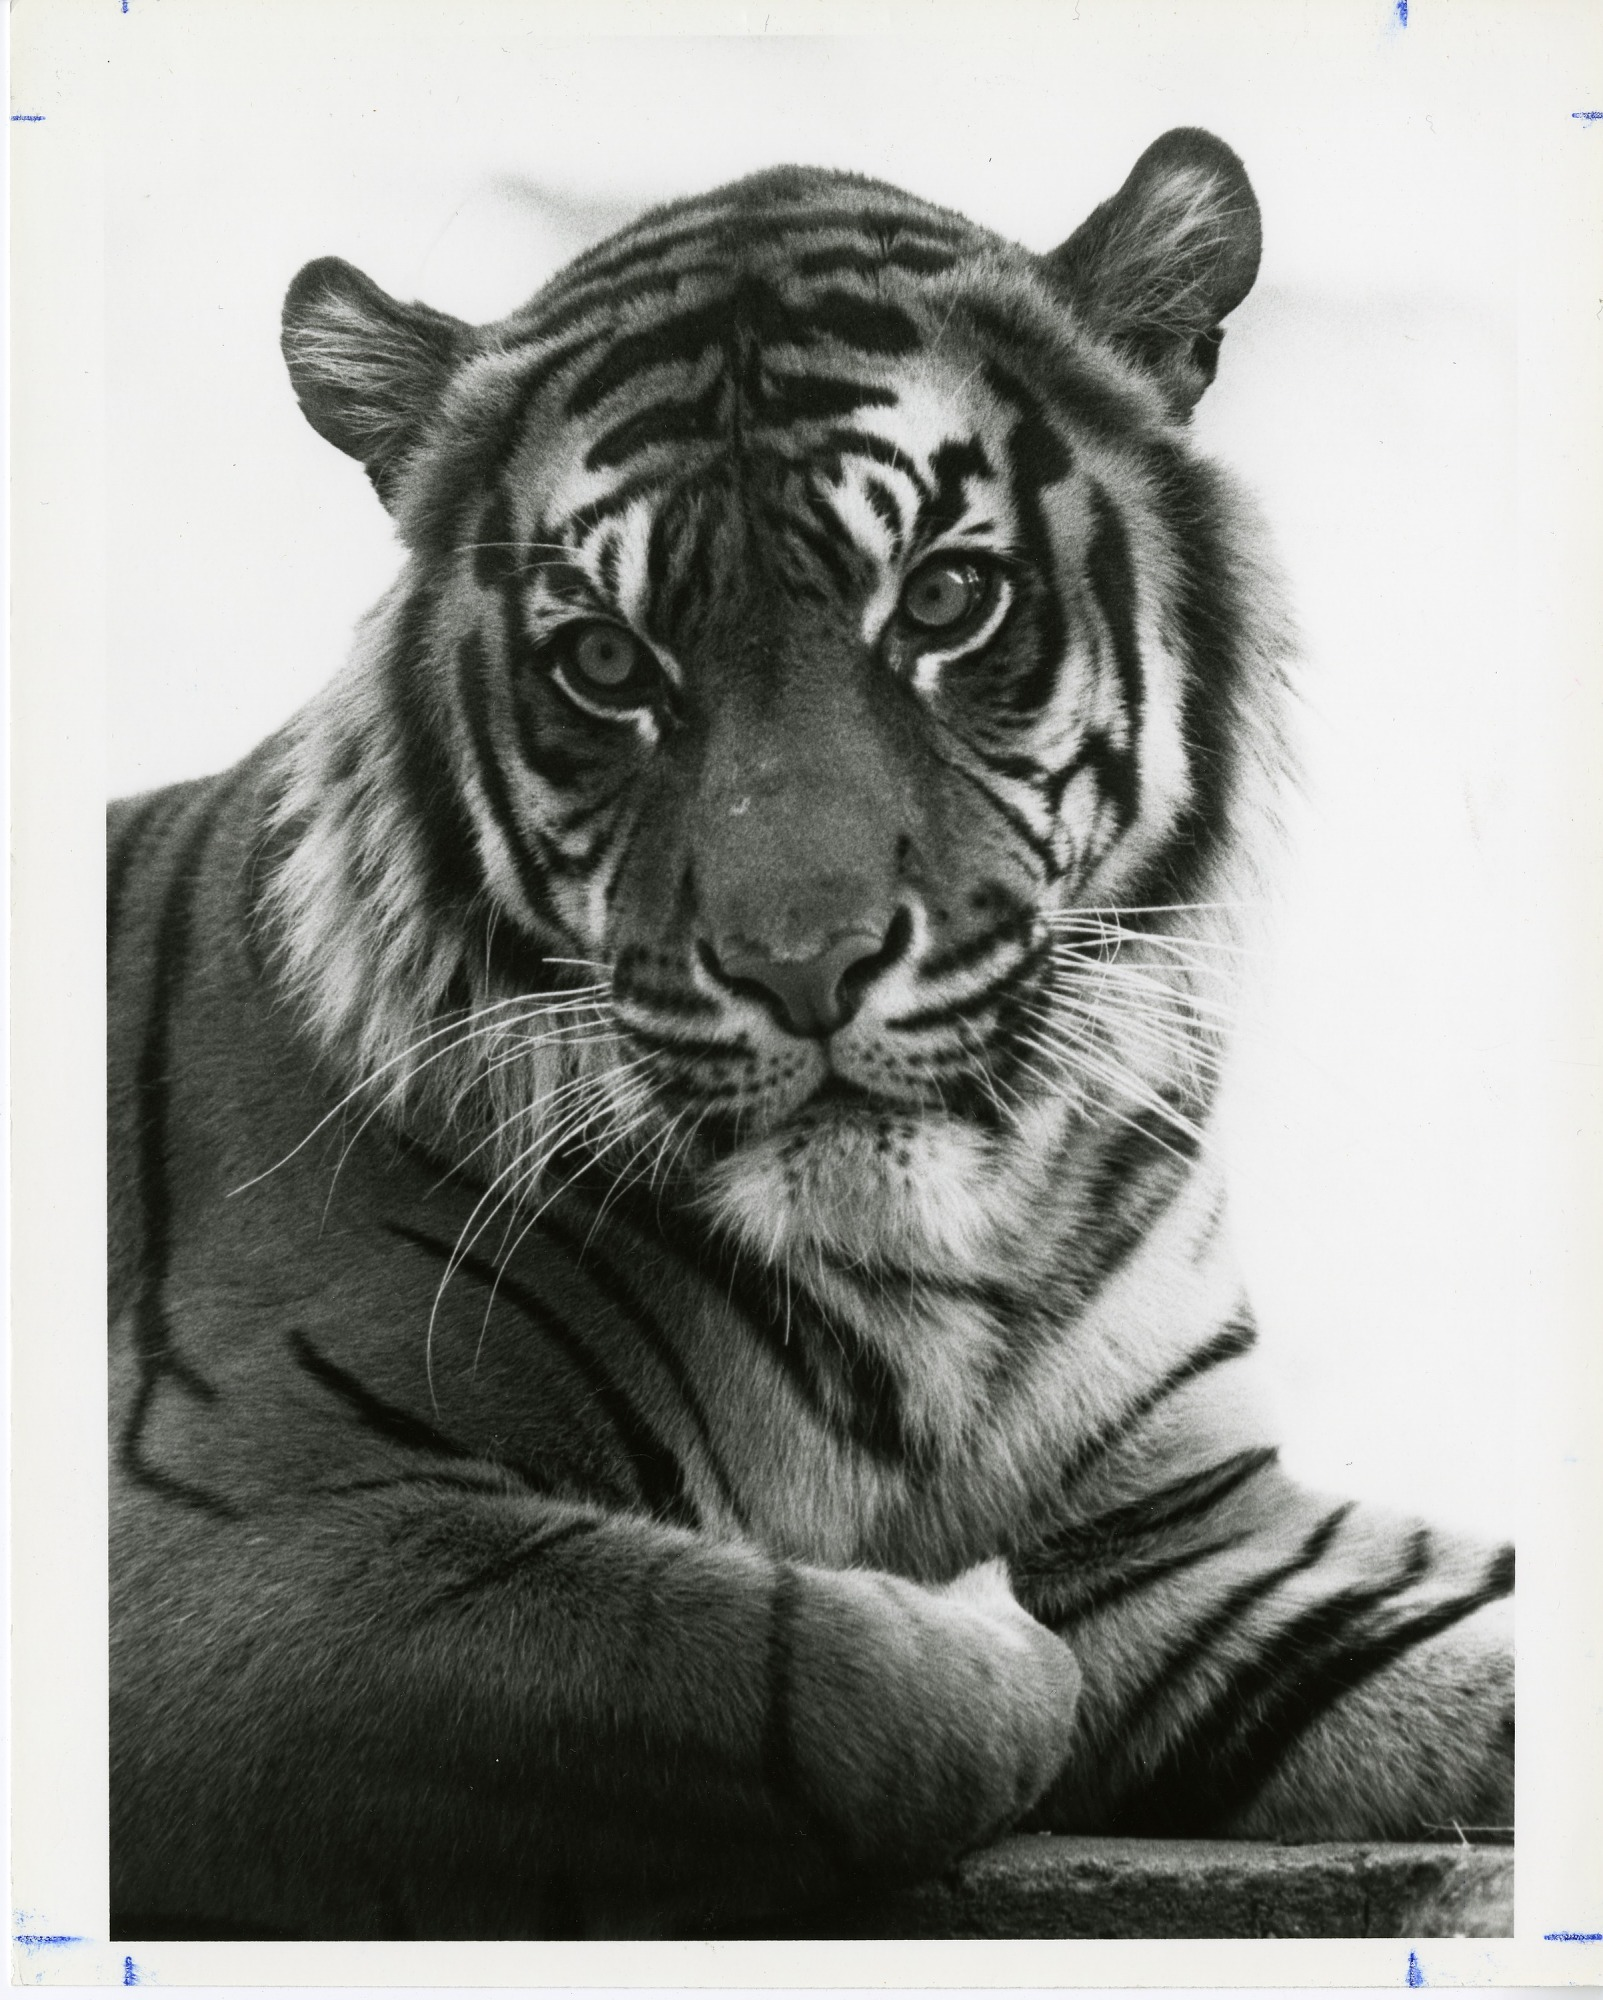 Riau the Sumatran Tiger, by Cohen, Jessie, 1989, Smithsonian Archives - History Div, SIA2011-1028.